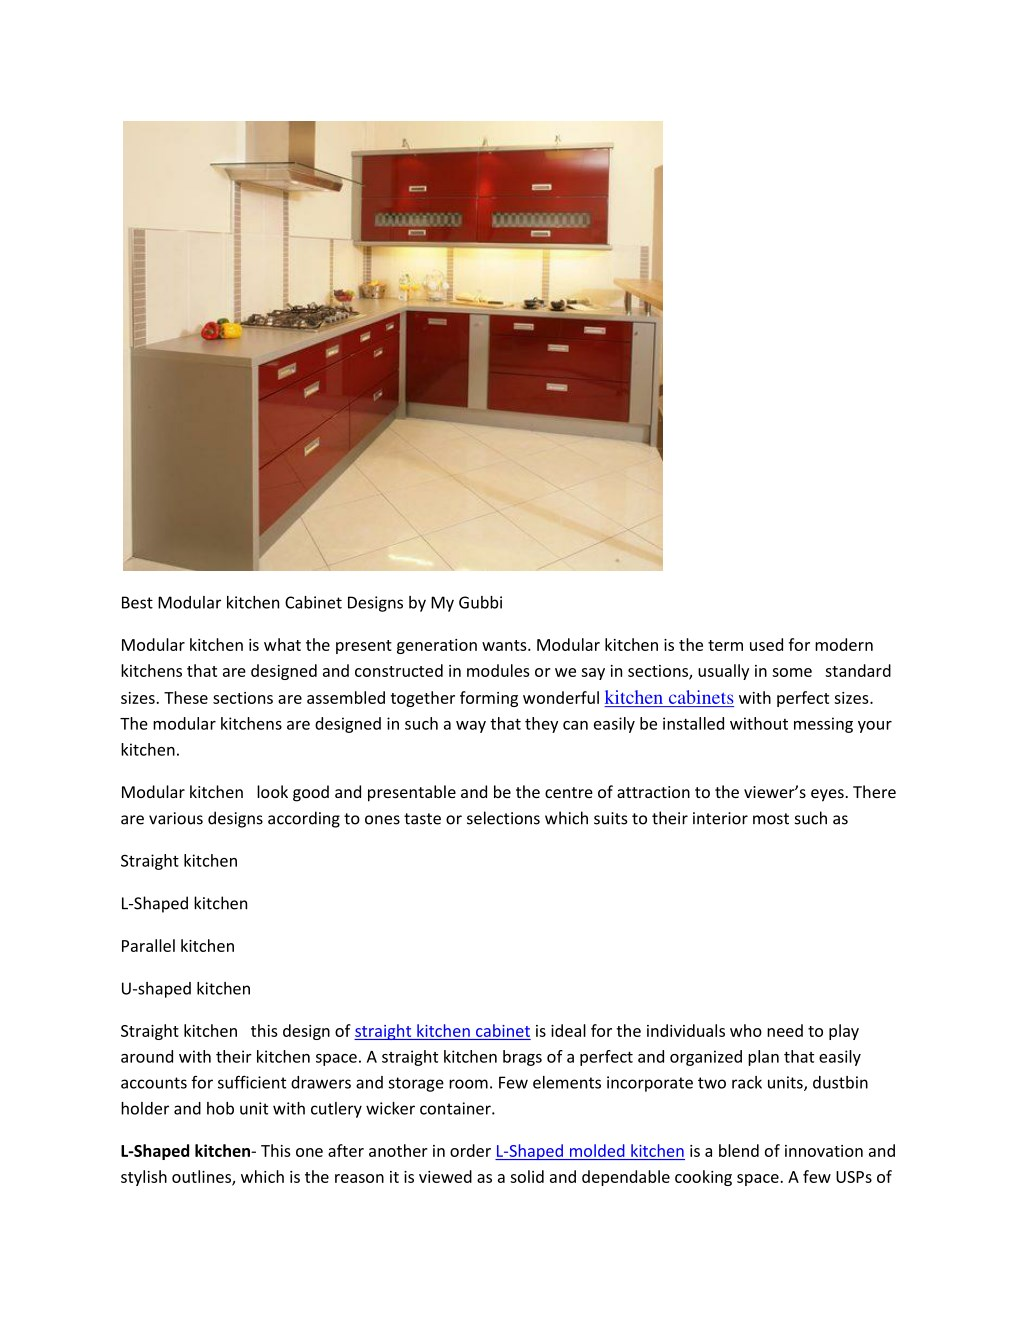 Ppt Best Modular Kitchen Cabinet Designs By My Gubbi Powerpoint Presentation Id 7594348